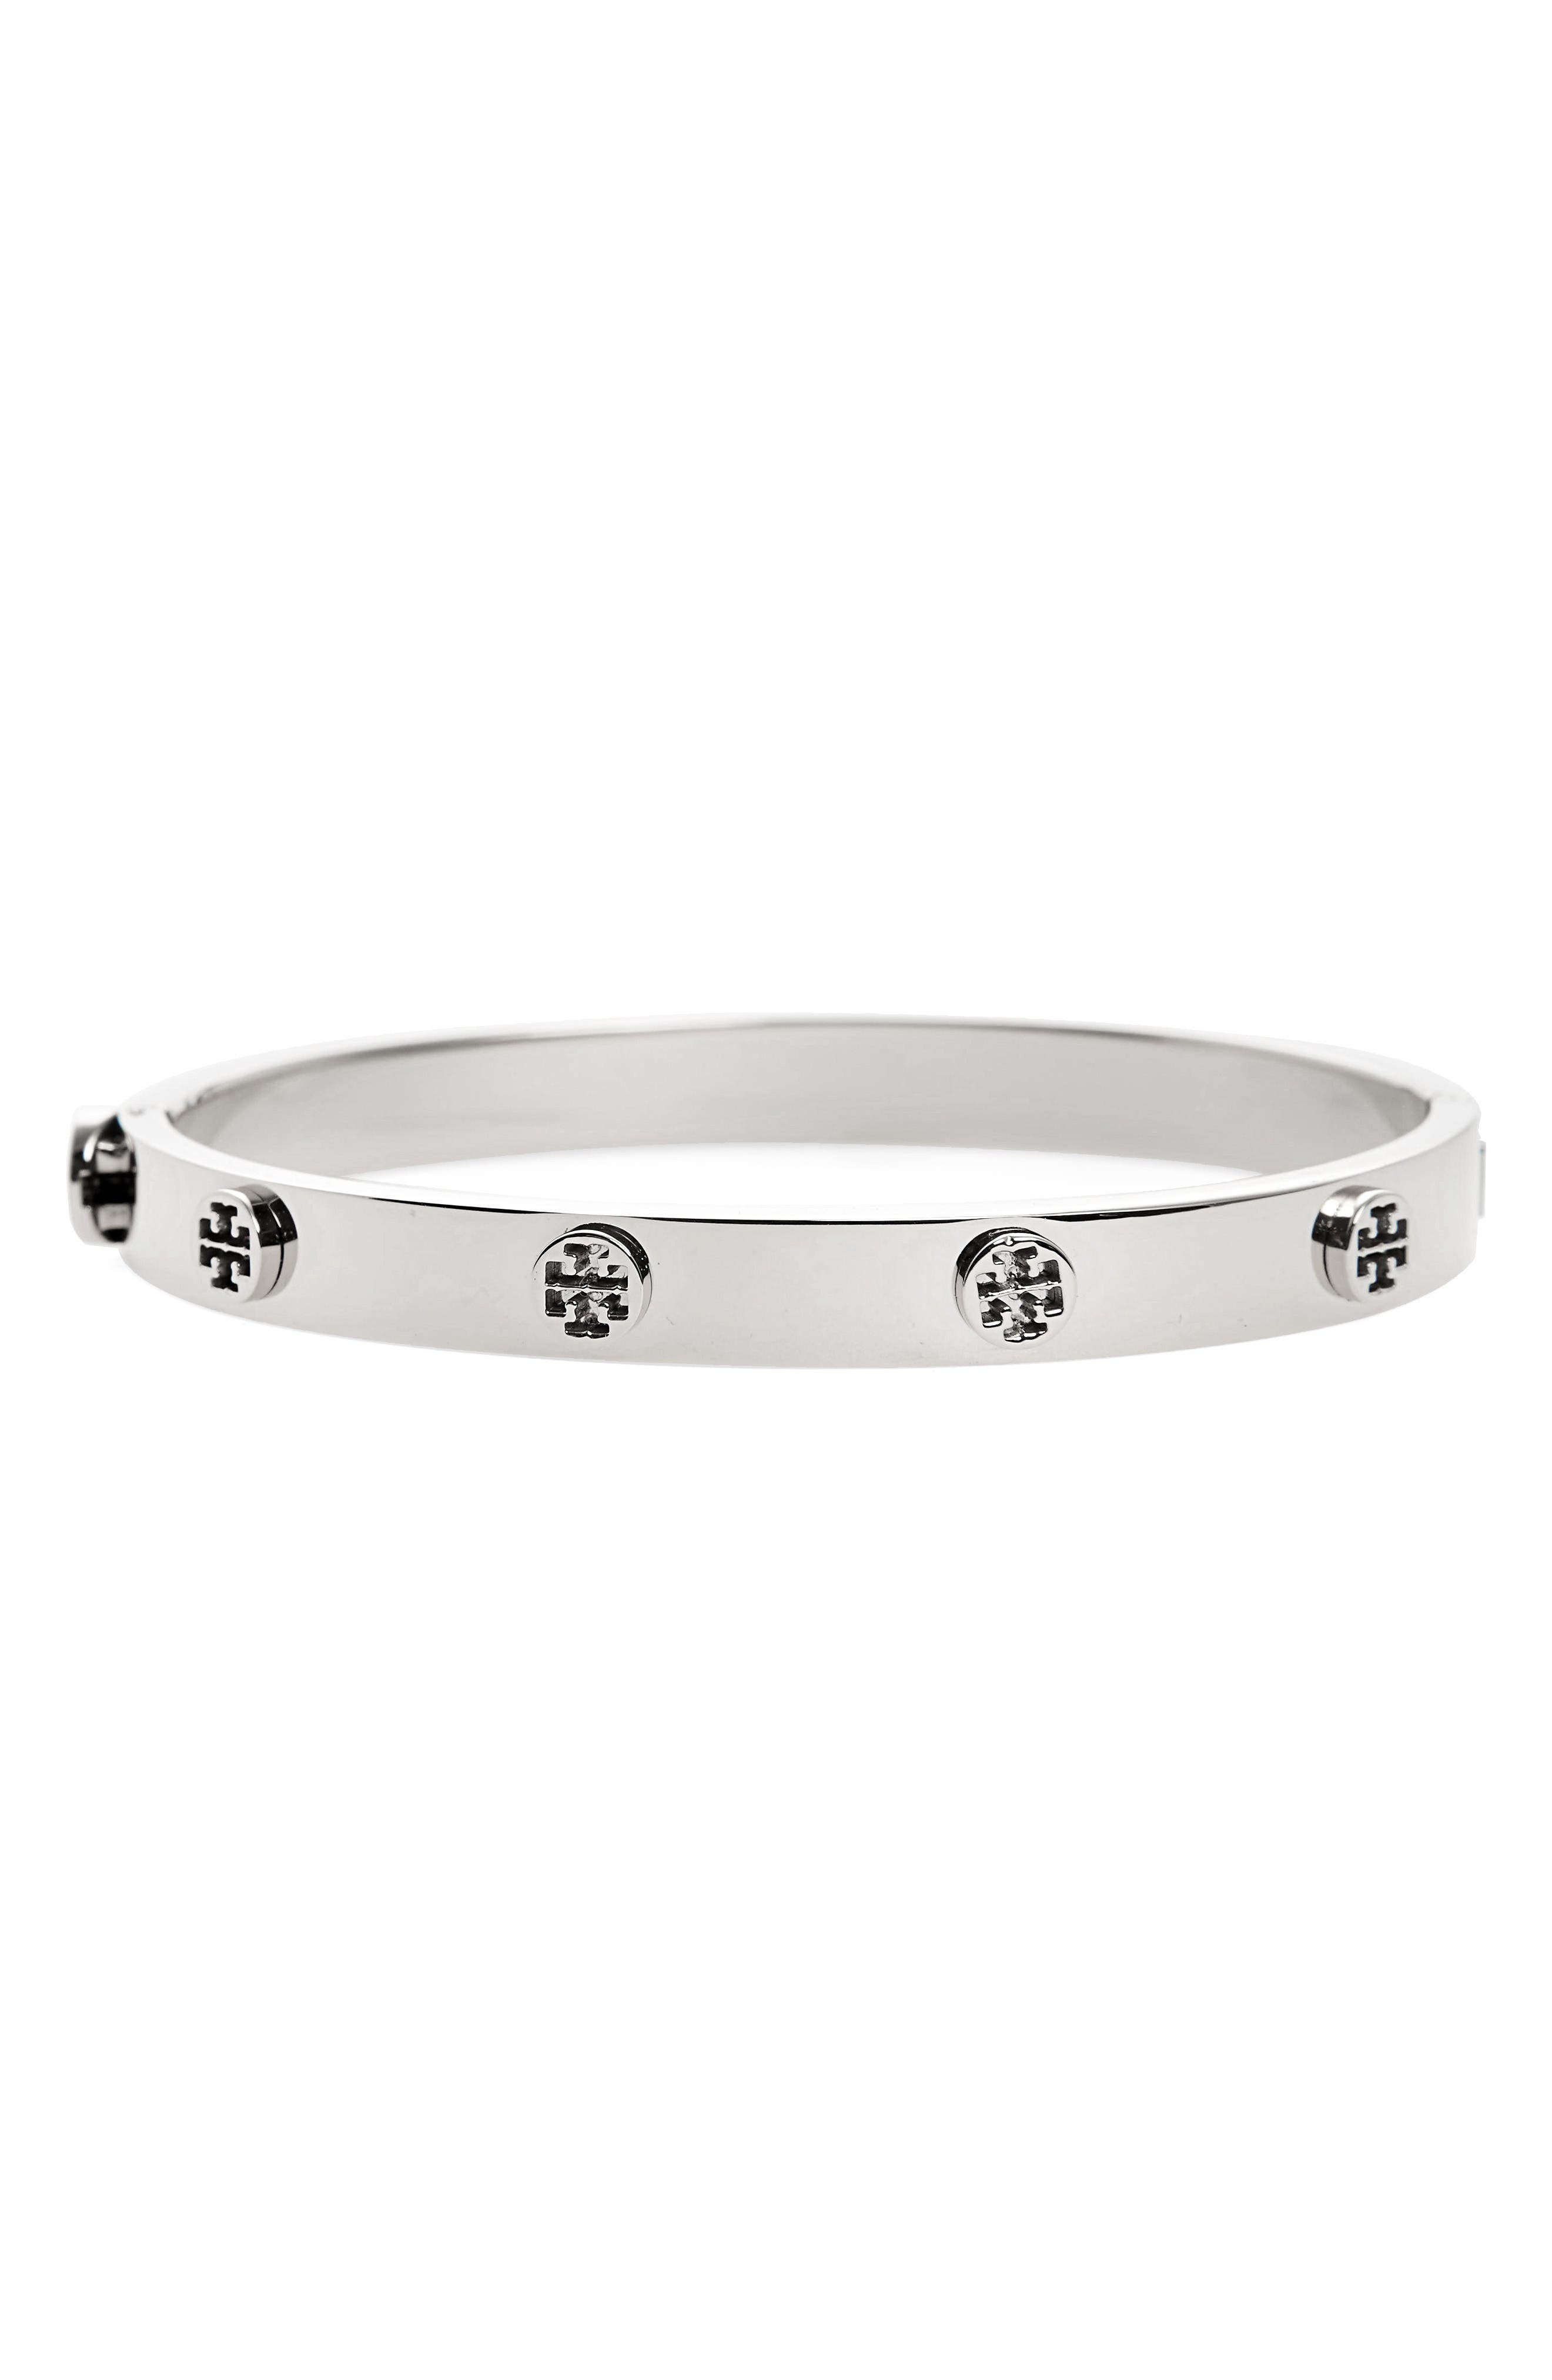 Sculptural studs that serve as graphic representations of Tory Burch\\\'s logo punctuate the fluid silhouette of a glistening bangle perfect for everyday wear. Style Name: Tory Burch Logo Stud Bangle. Style Number: 5285596. Available in stores.